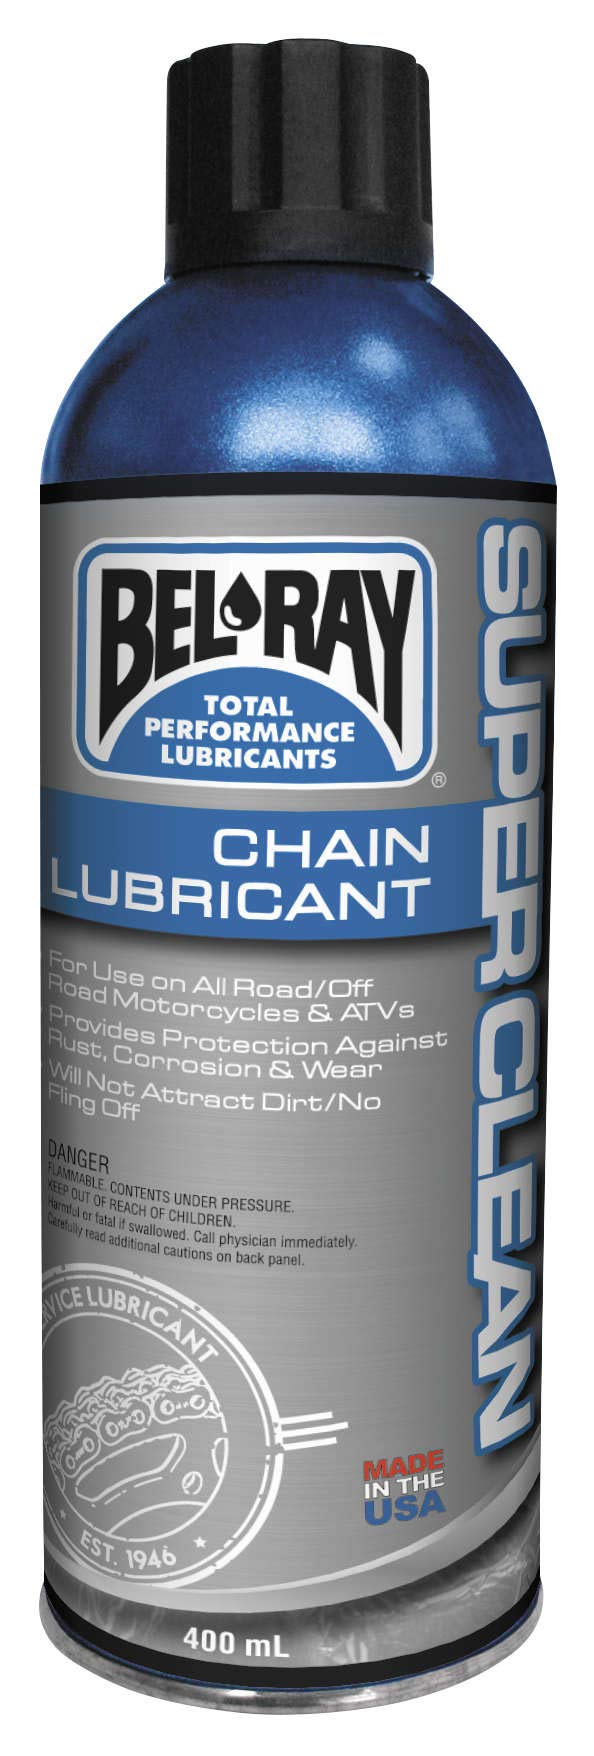 Bel Ray Lubricants 16 Ozsuper Clean Chain Lube 400 Ml 99470-A400w / 92450-A13.5 New